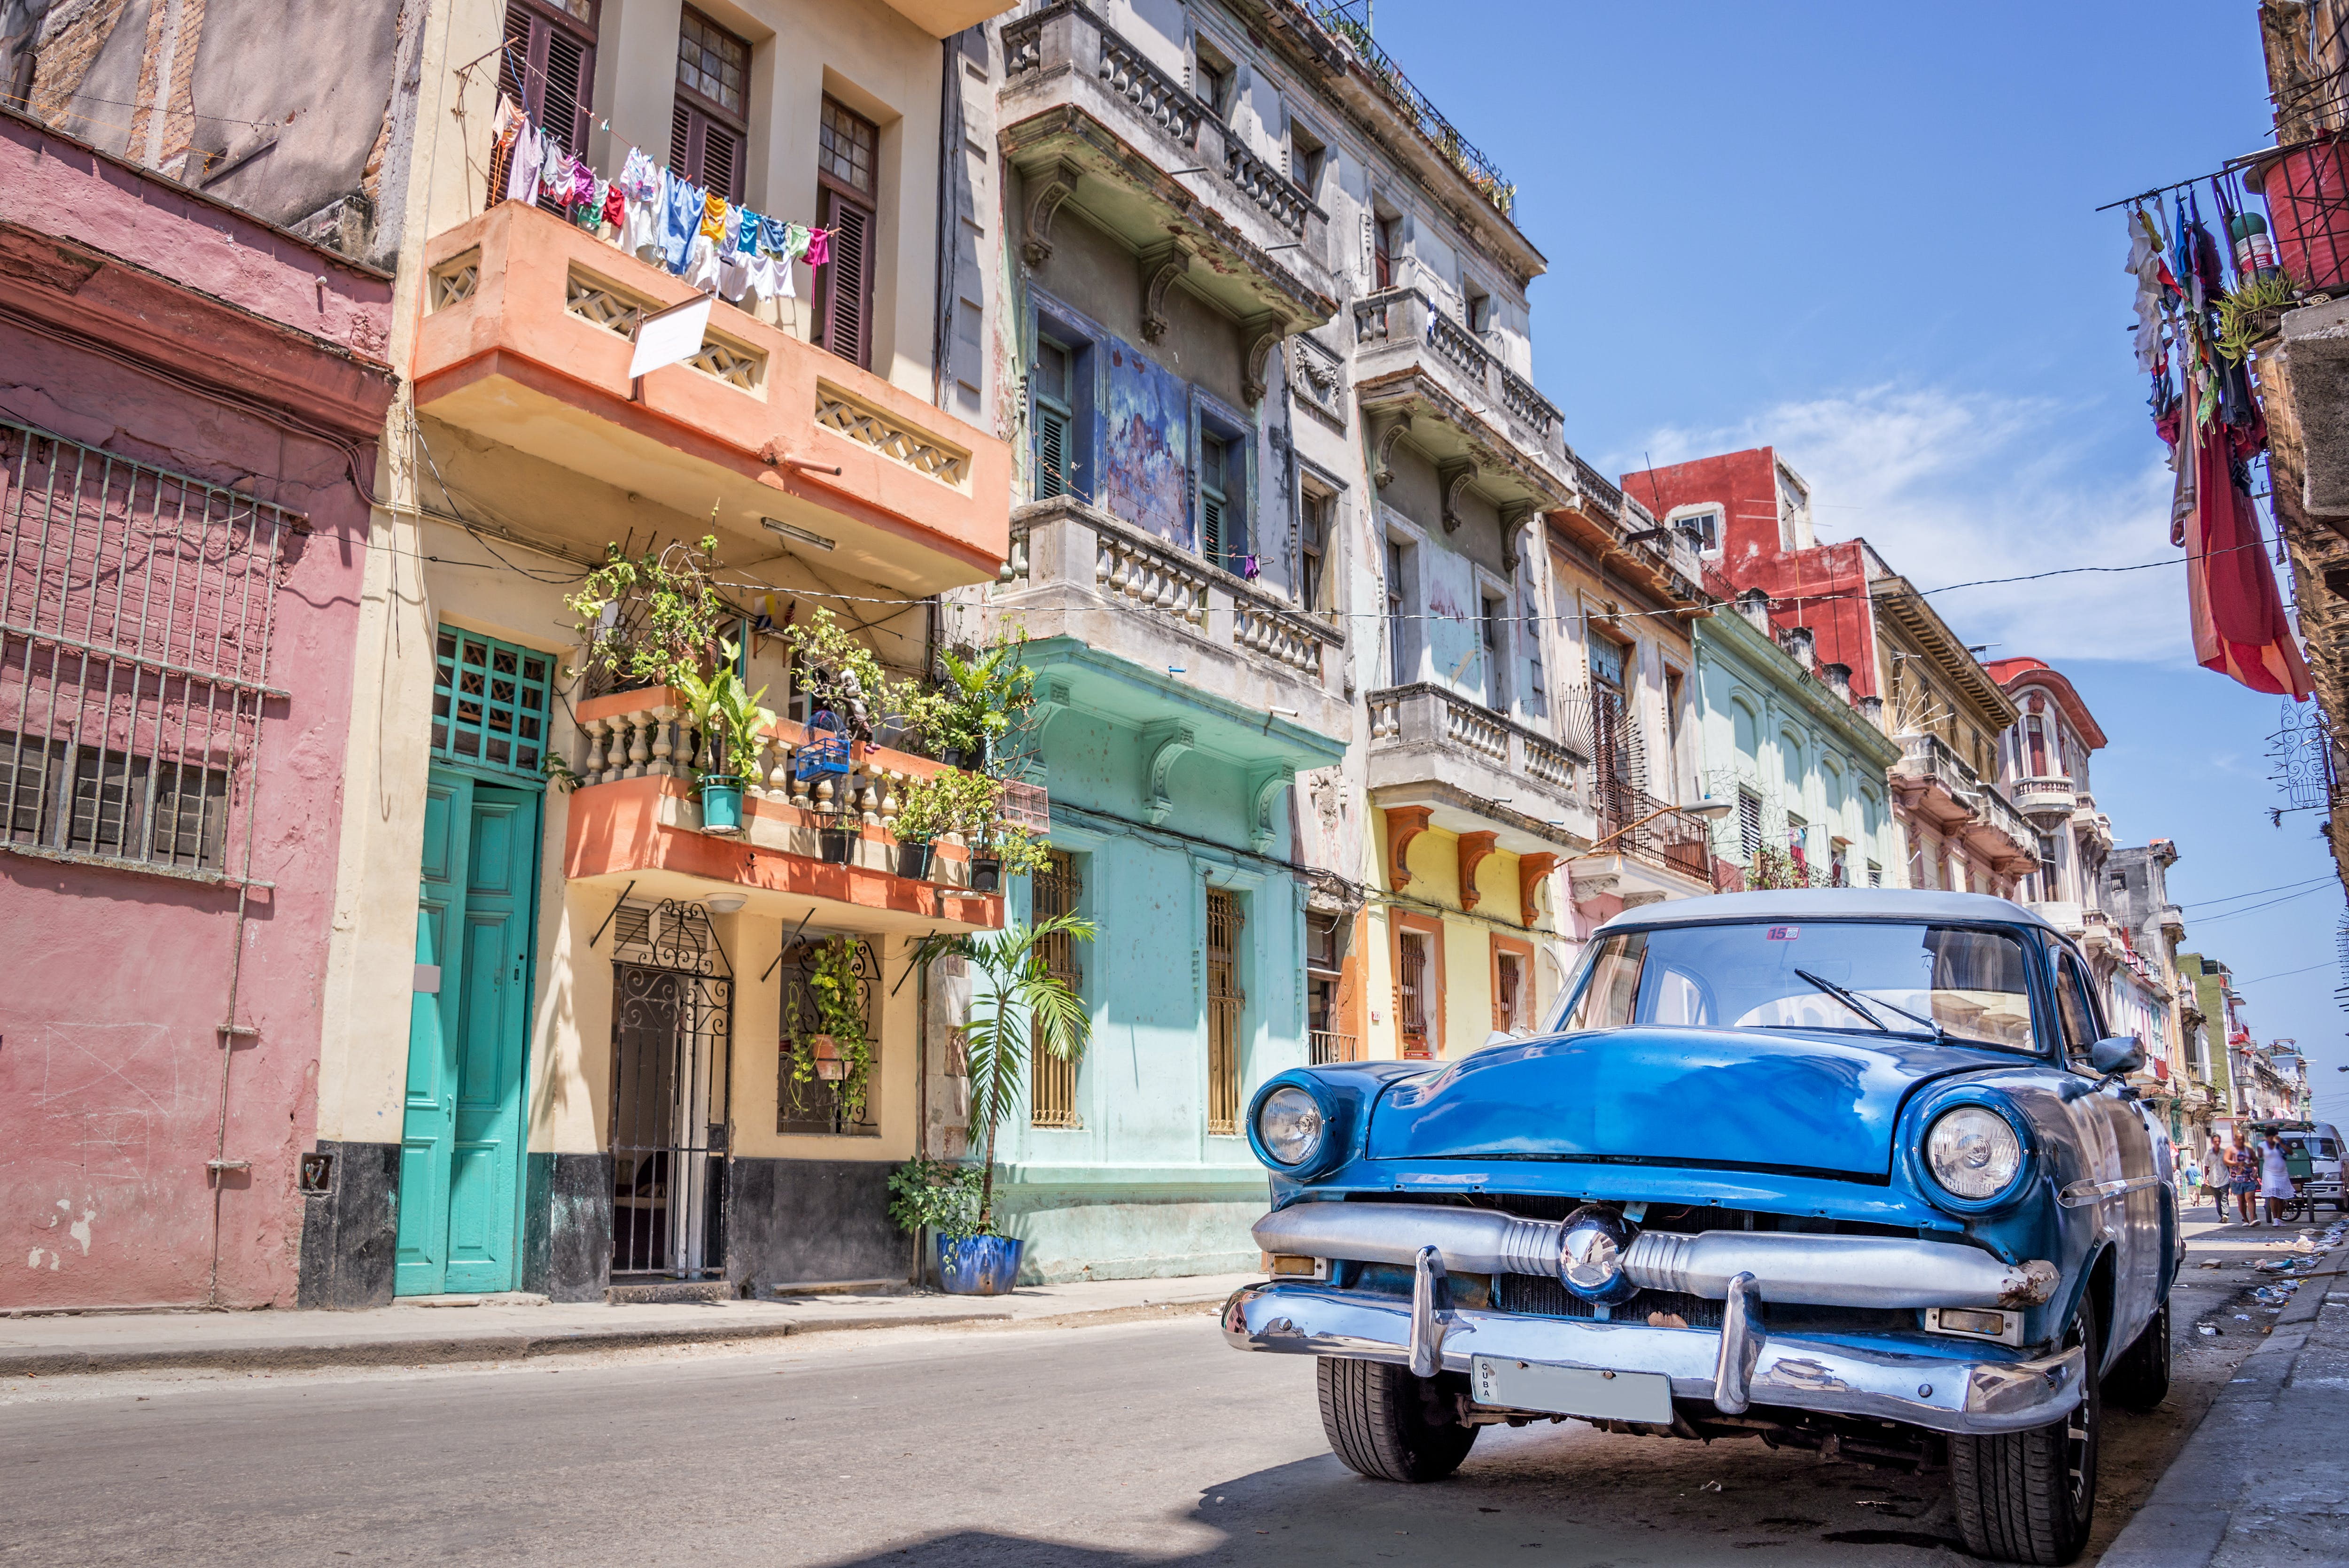 Introducing Seabourn's 2019 and 2020 Cuba Cruises